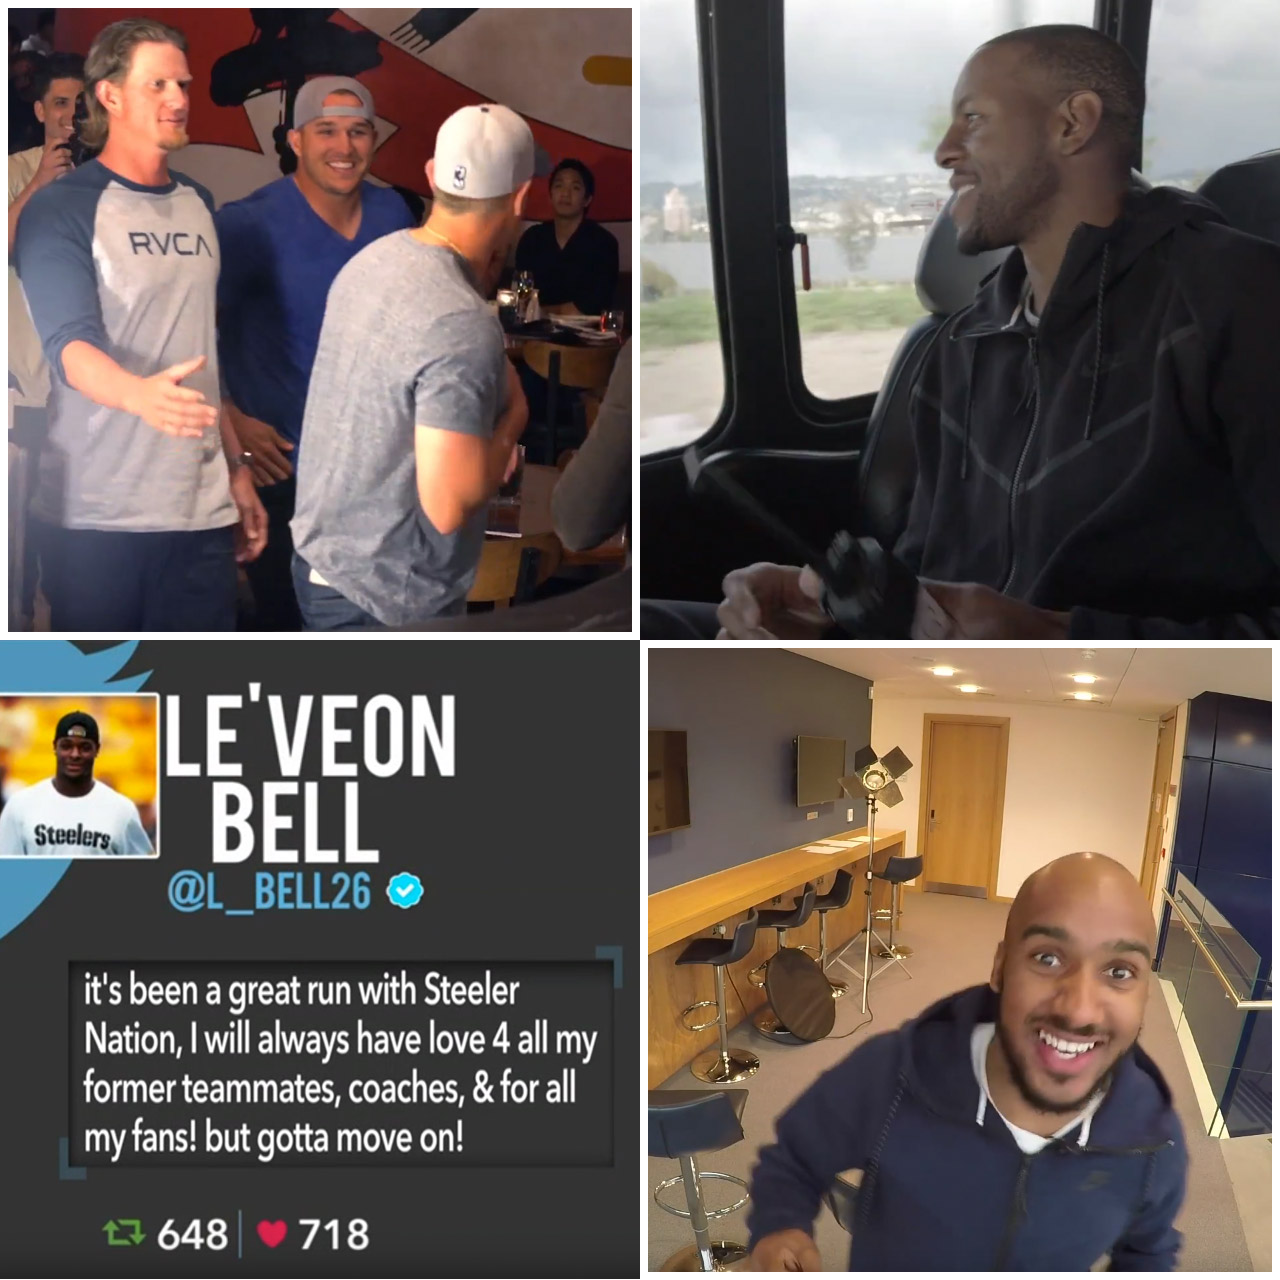 April Fools' Day pranks with Mike Trout, Andre Iguodala, Le'Veon Bell and Fabian Delph